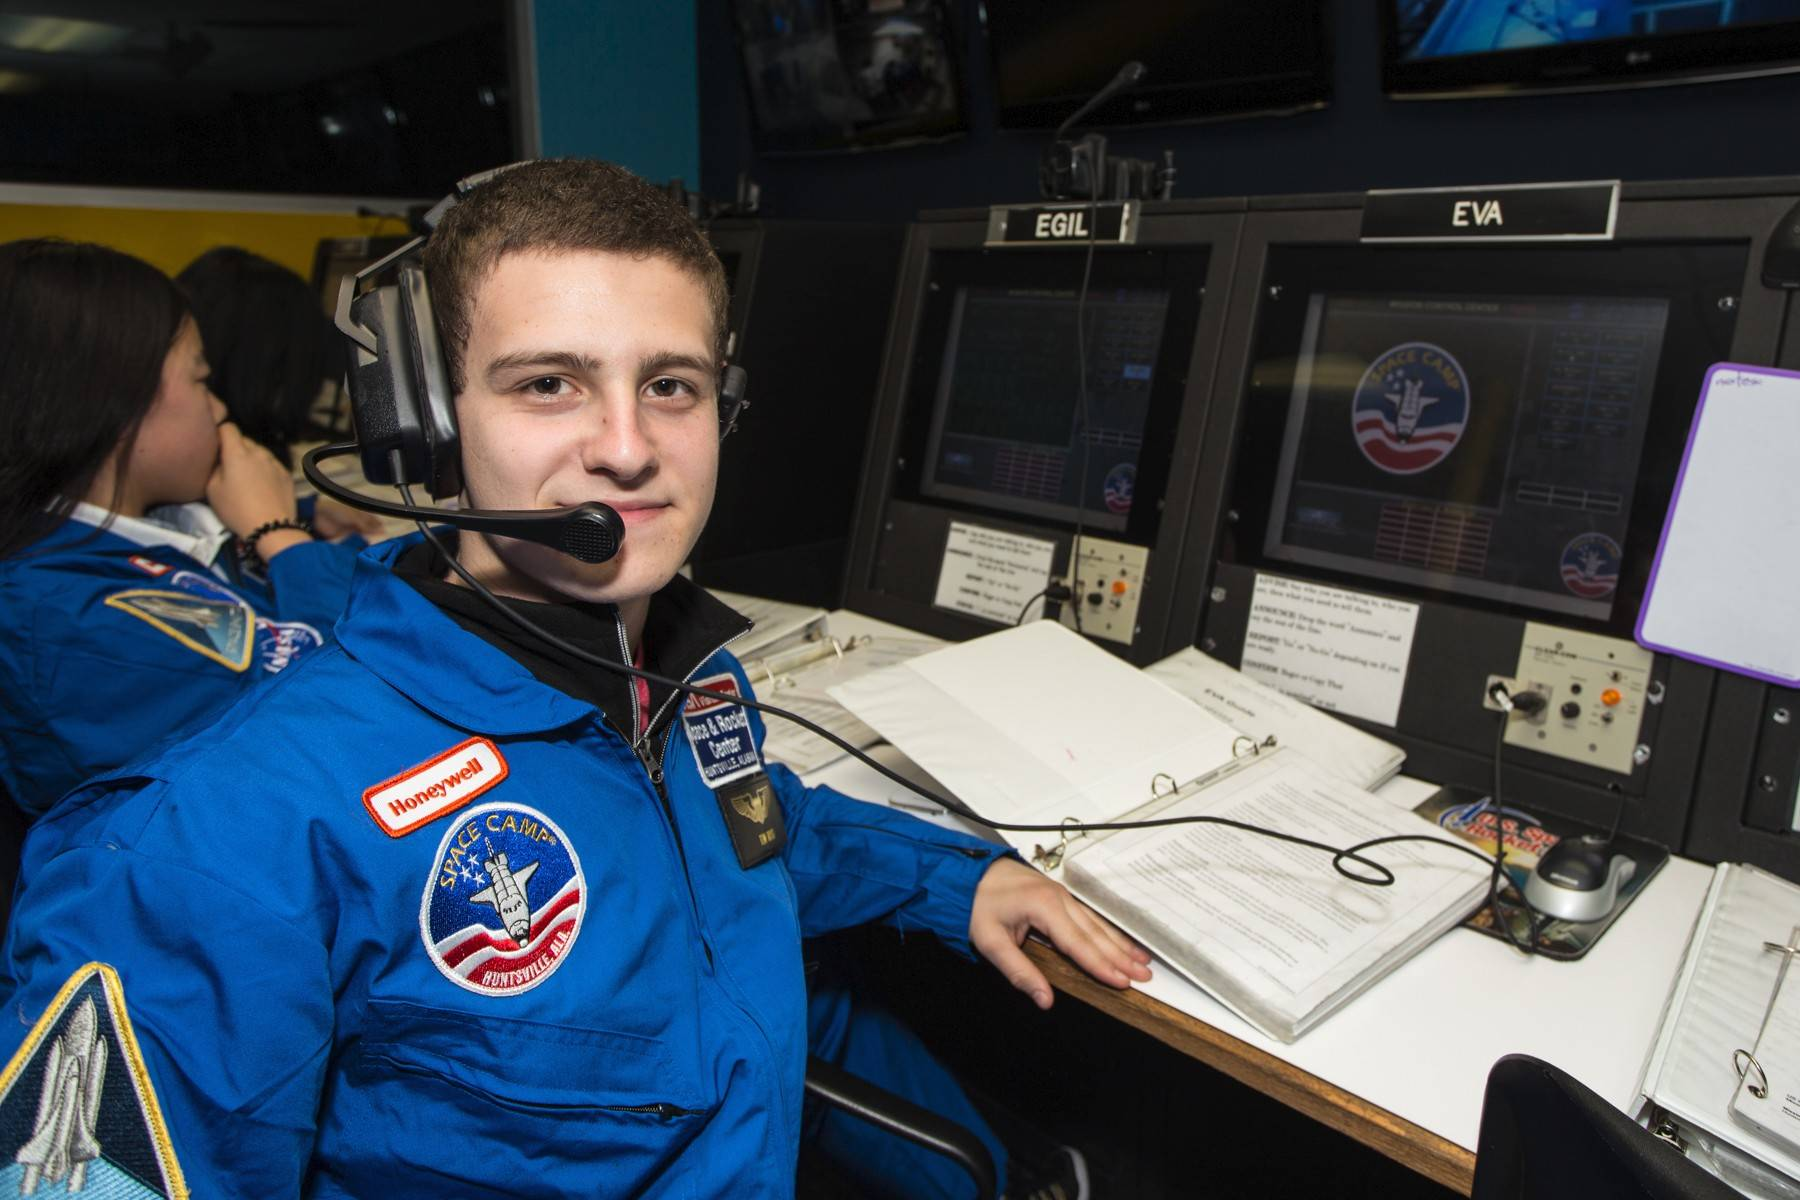 Thomas Rossi of Elburn is at the Honeywell Leadership Challenge Academy at the U.S. Space & Rocket Center in Huntsville, Ala.